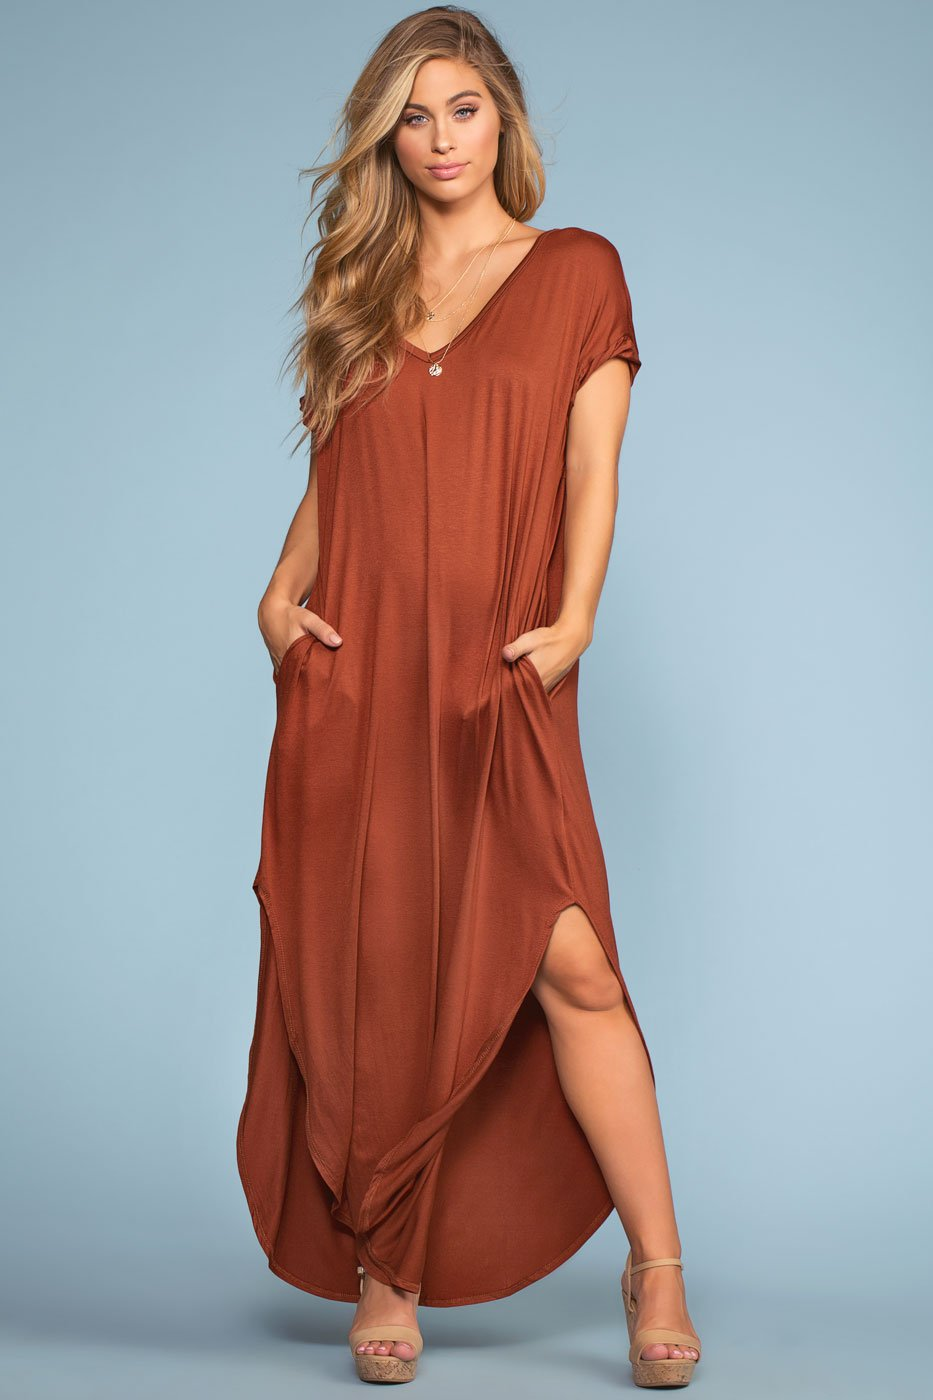 Dresses - Sand Dollar Maxi Dress - Cinnamon